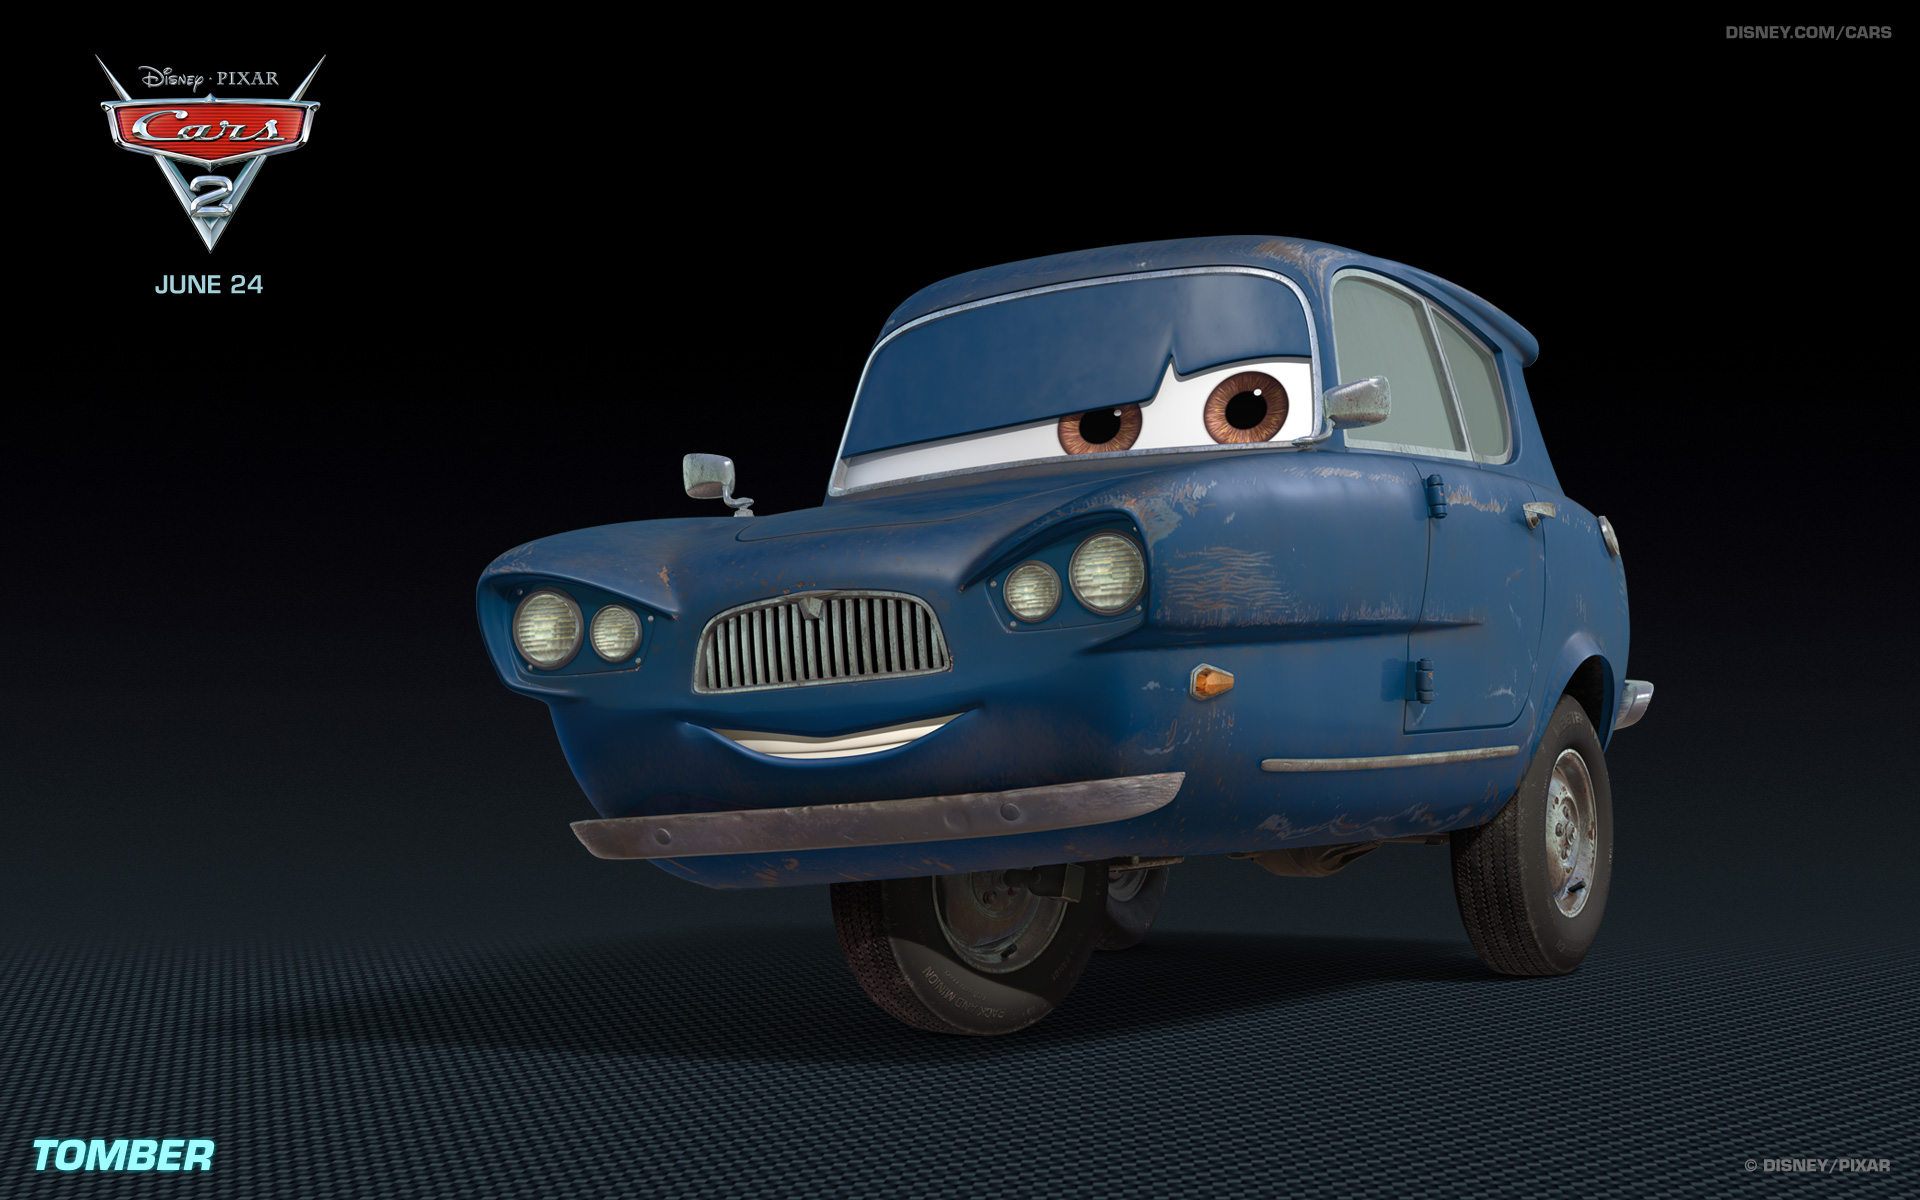 Car Names That Start With J >> Tomber | Pixar Cars Wiki | Fandom powered by Wikia